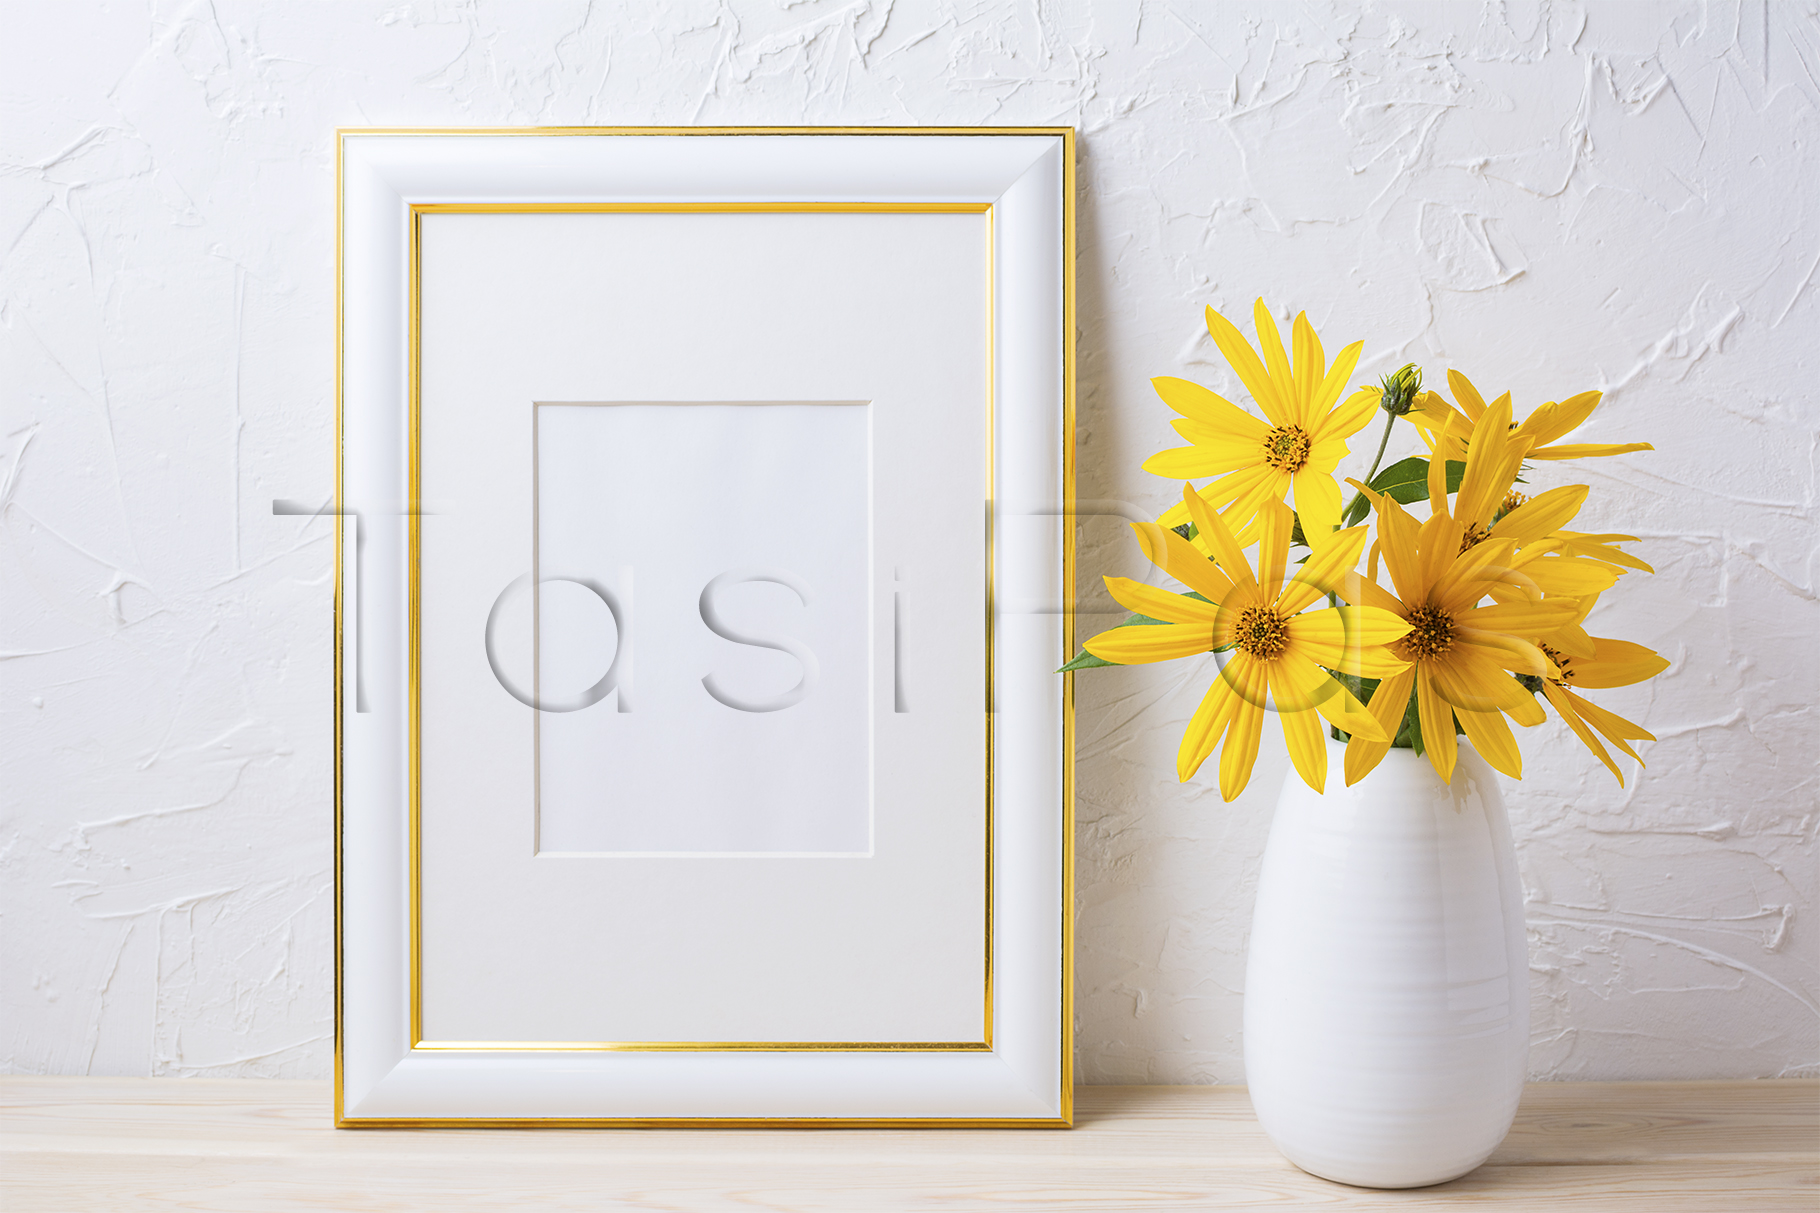 Gold decorated frame mockup with yellow rosinweed flowers example image 2